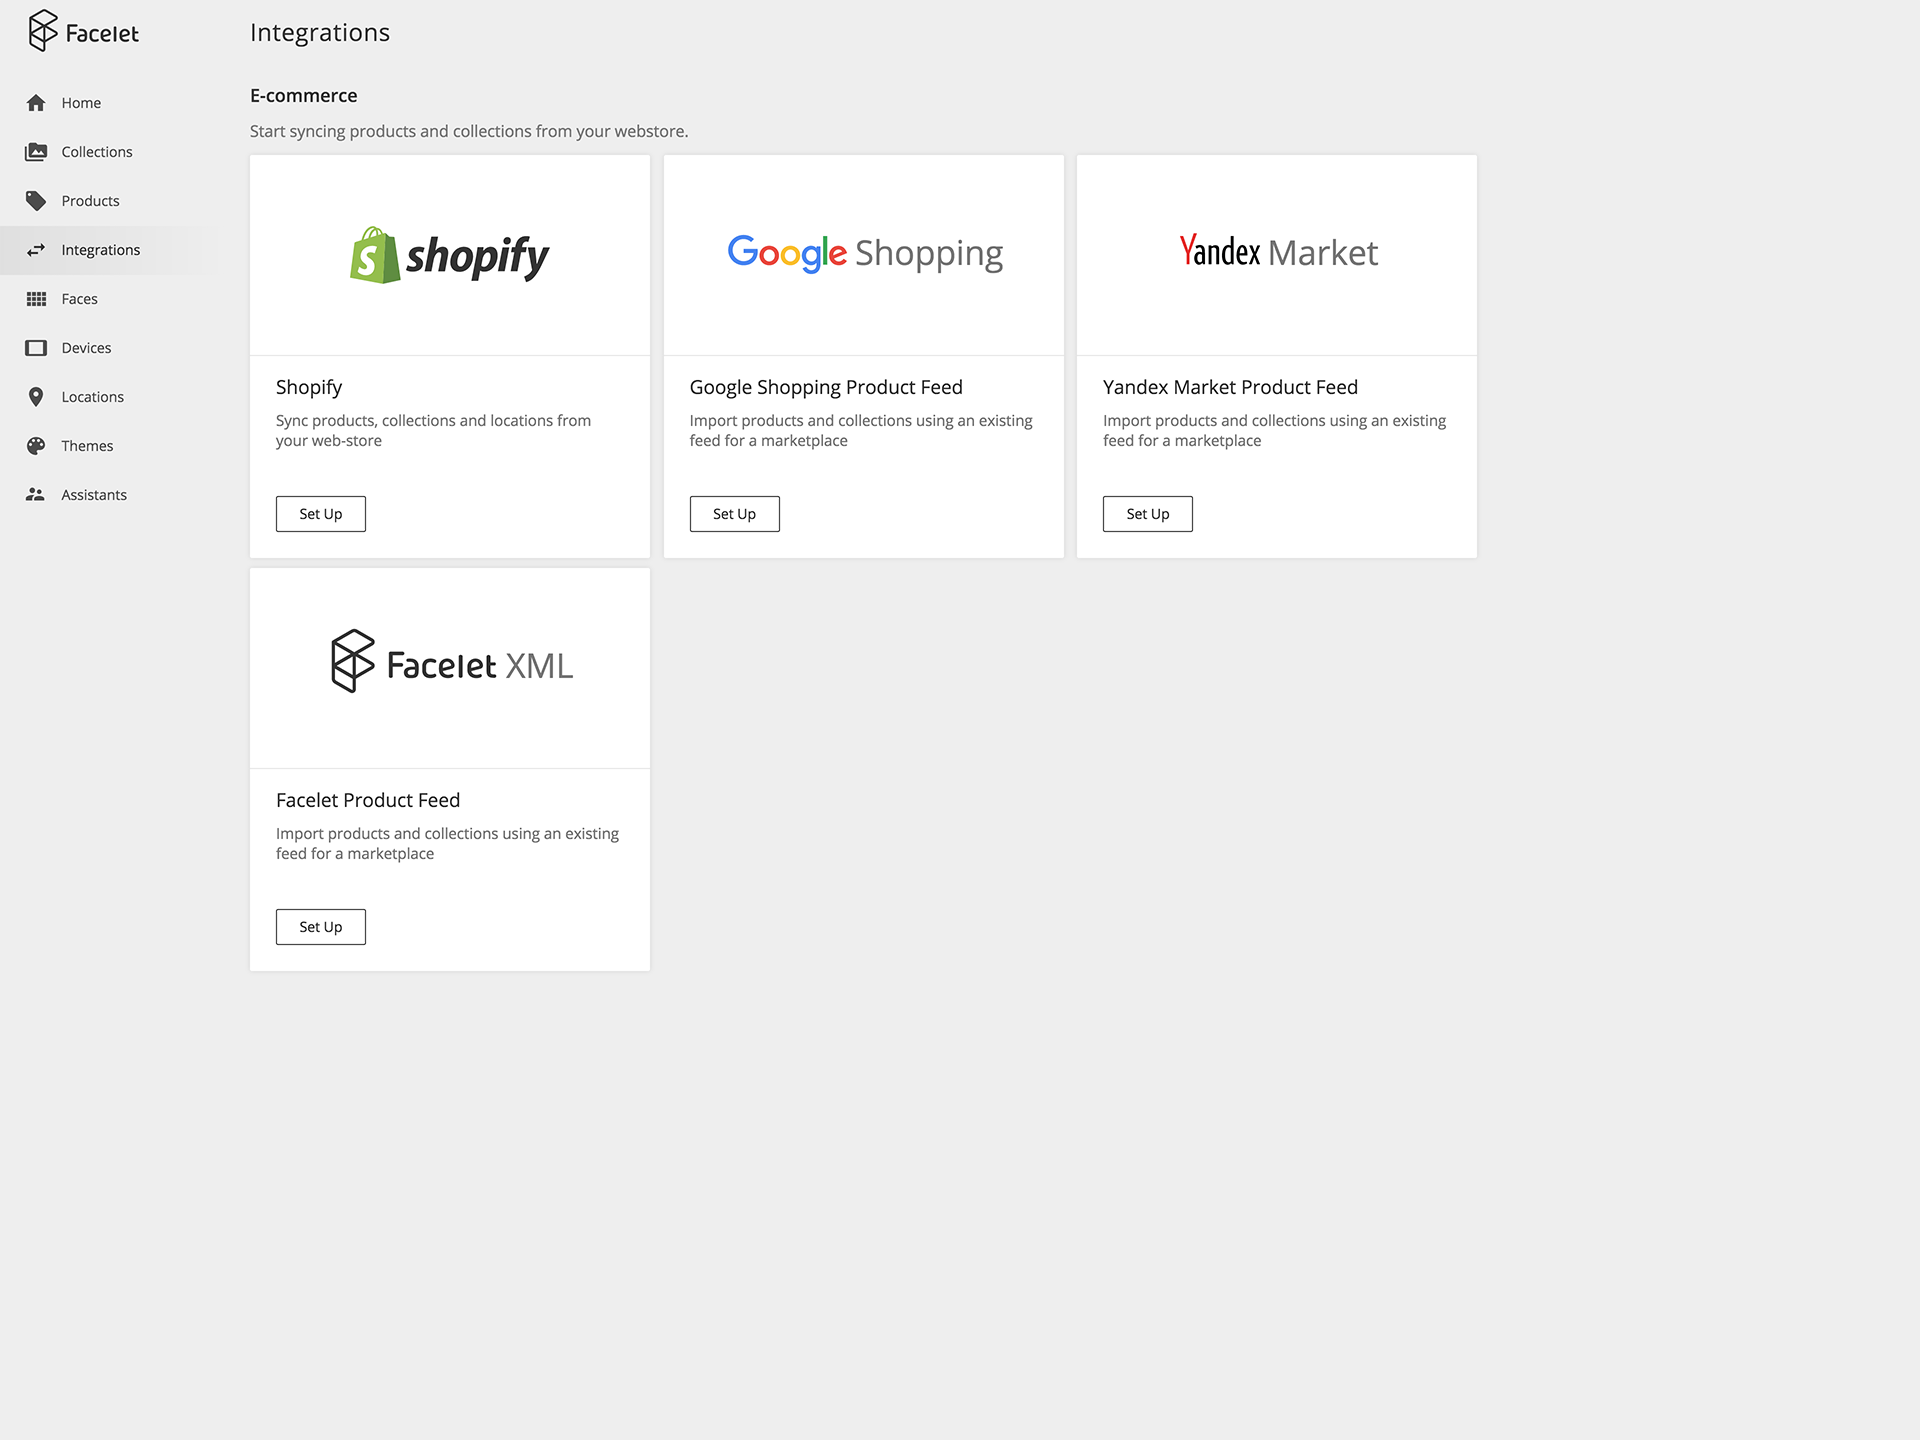 Quick integration with Shopify, Google Shopping, or your web store catalog